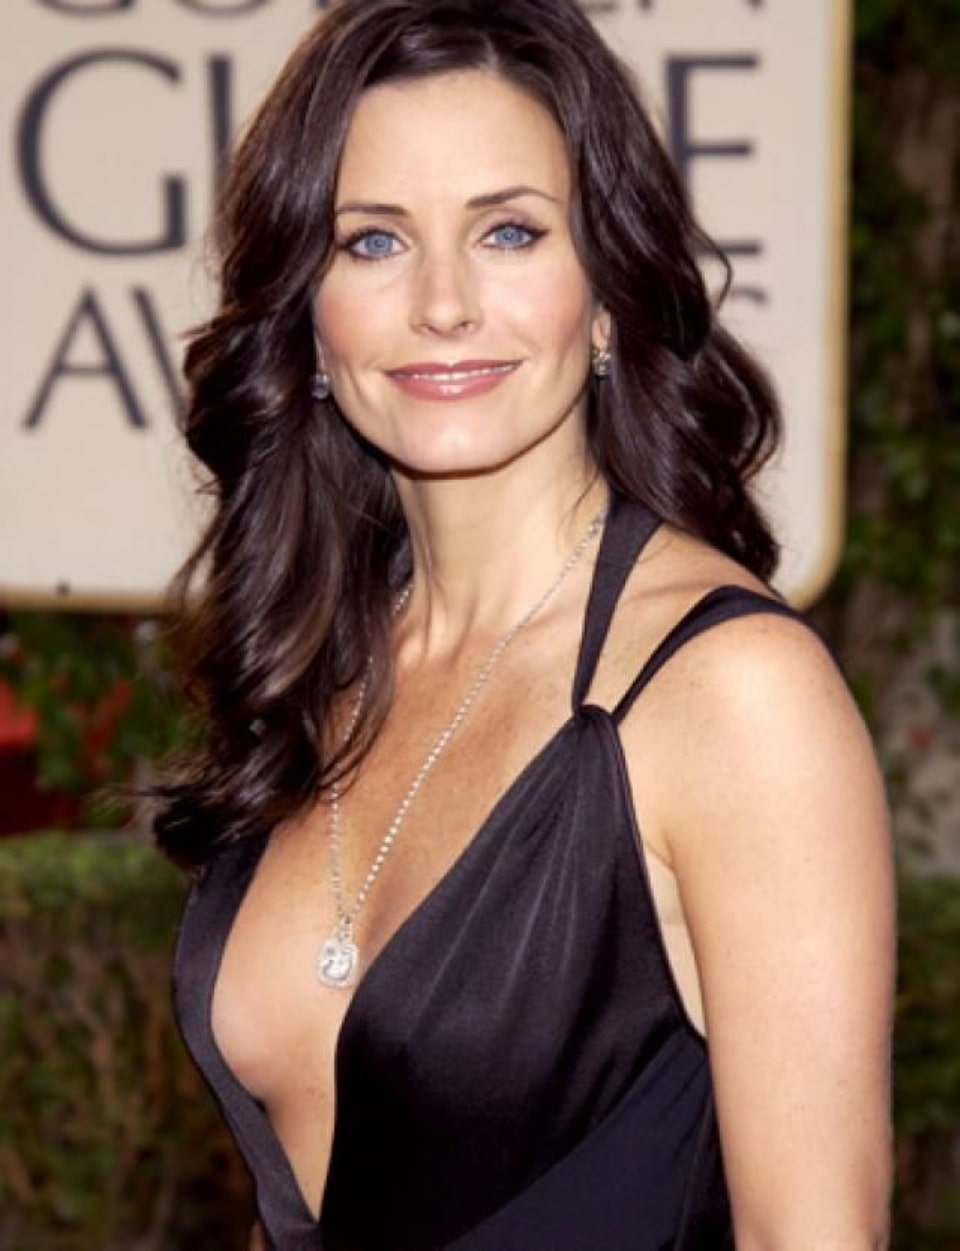 The Hottest Photos Of Courteney Cox 12thblog